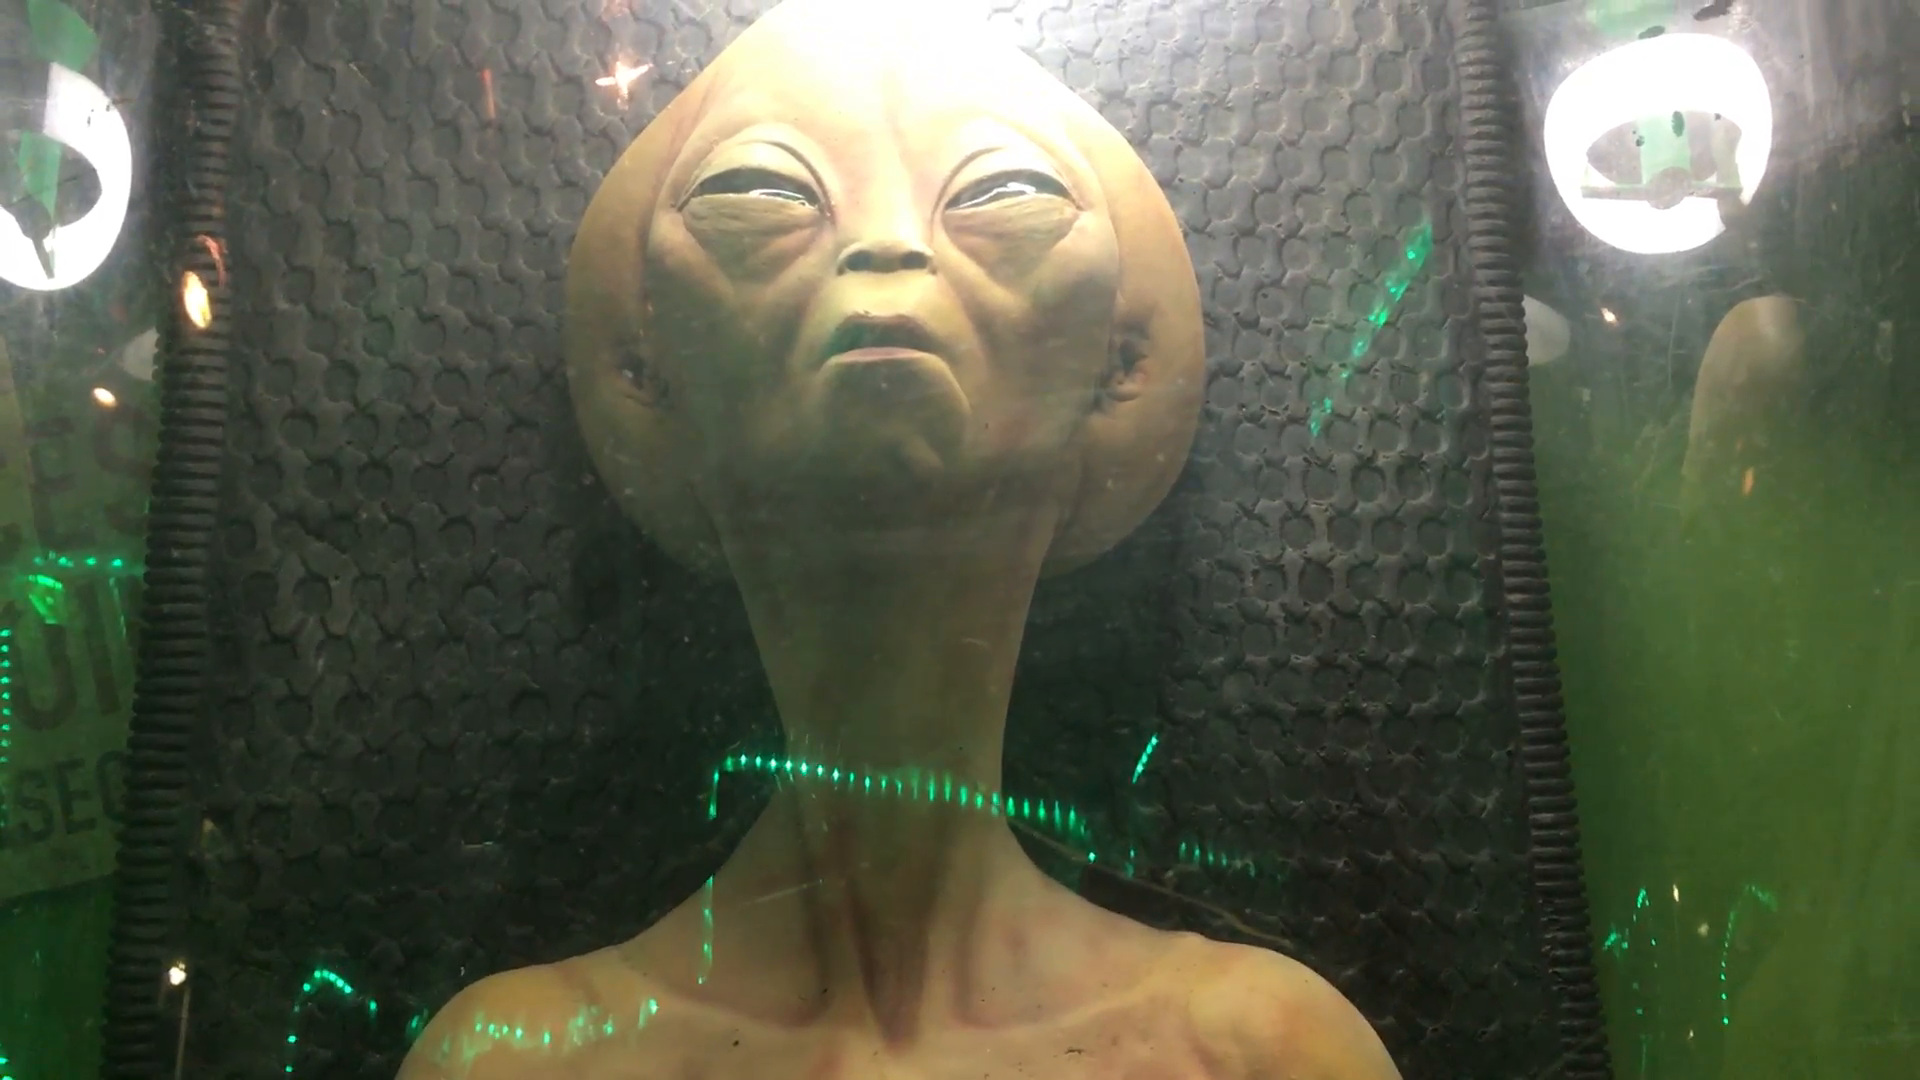 area-51-alien-found-aliens-disturbing-creepy-bizarre-martian_e3zlyv-6l__F0000